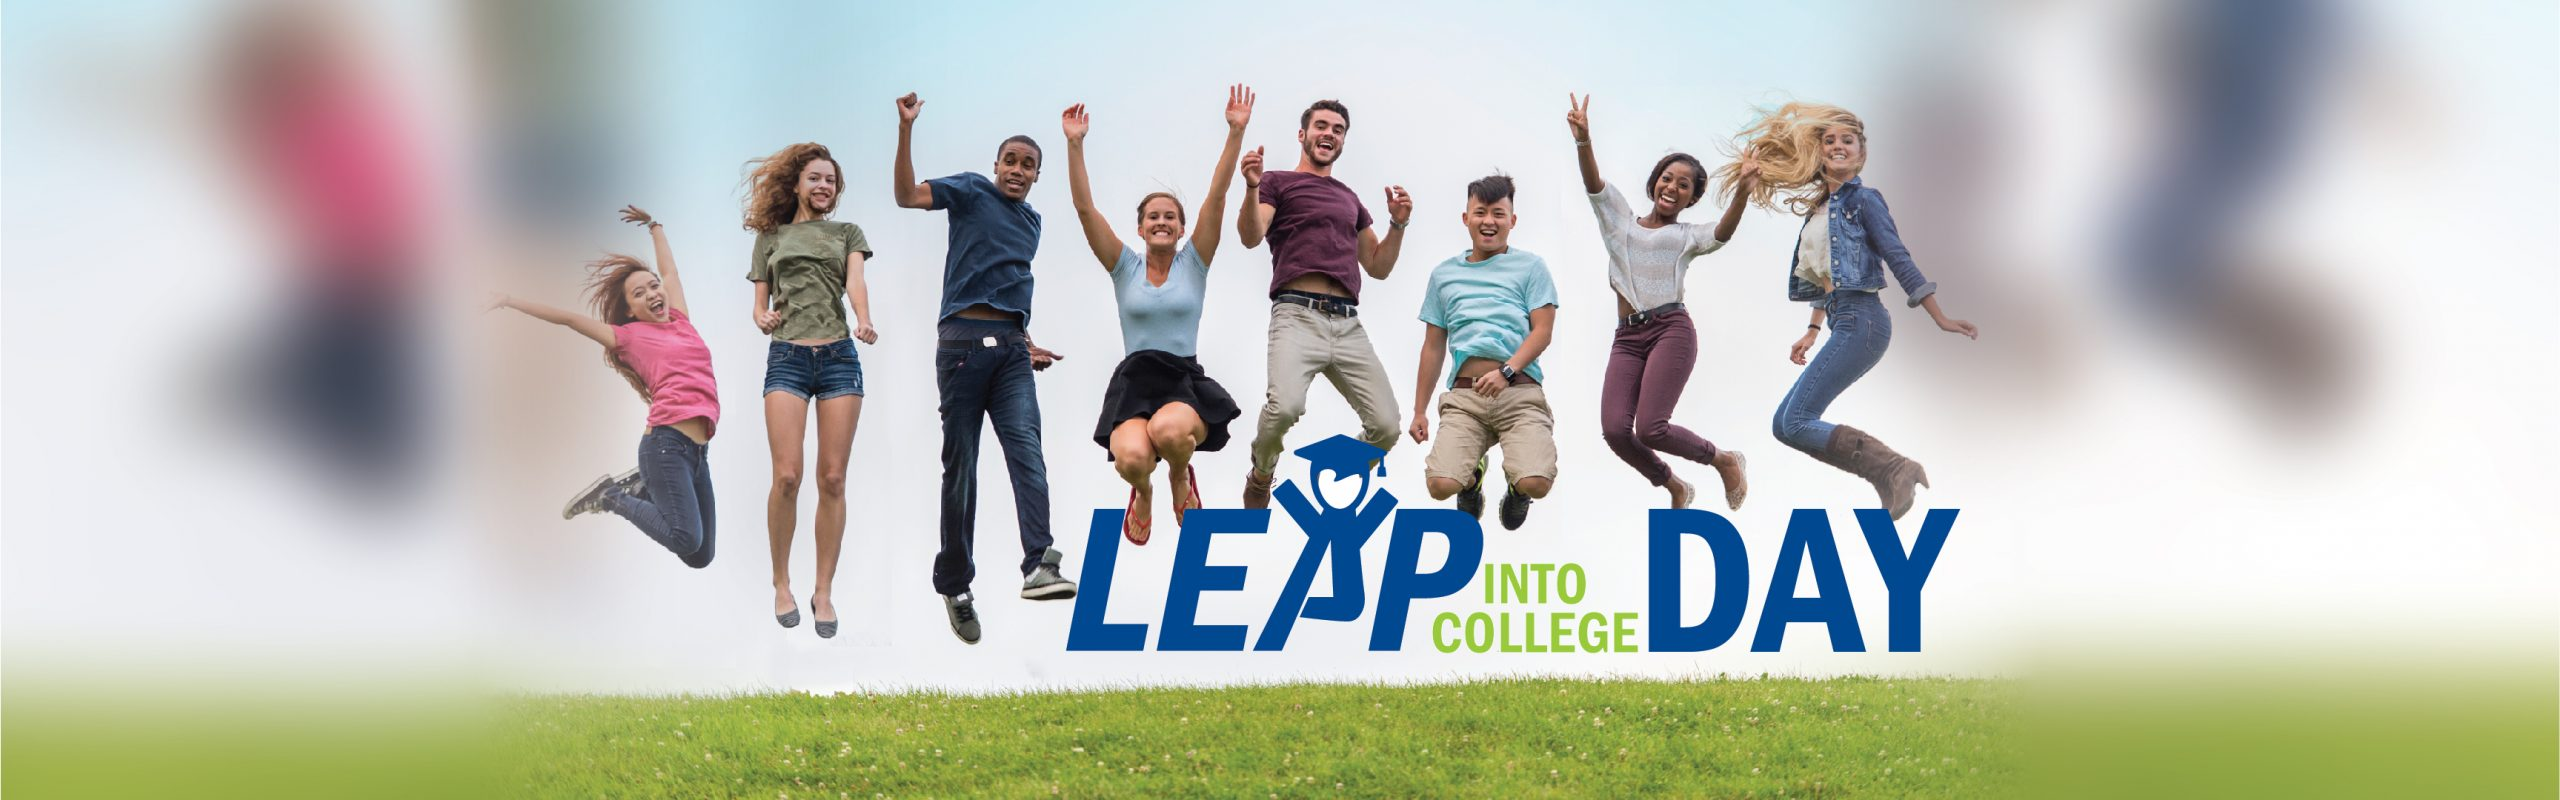 Leap Into College Day Banner